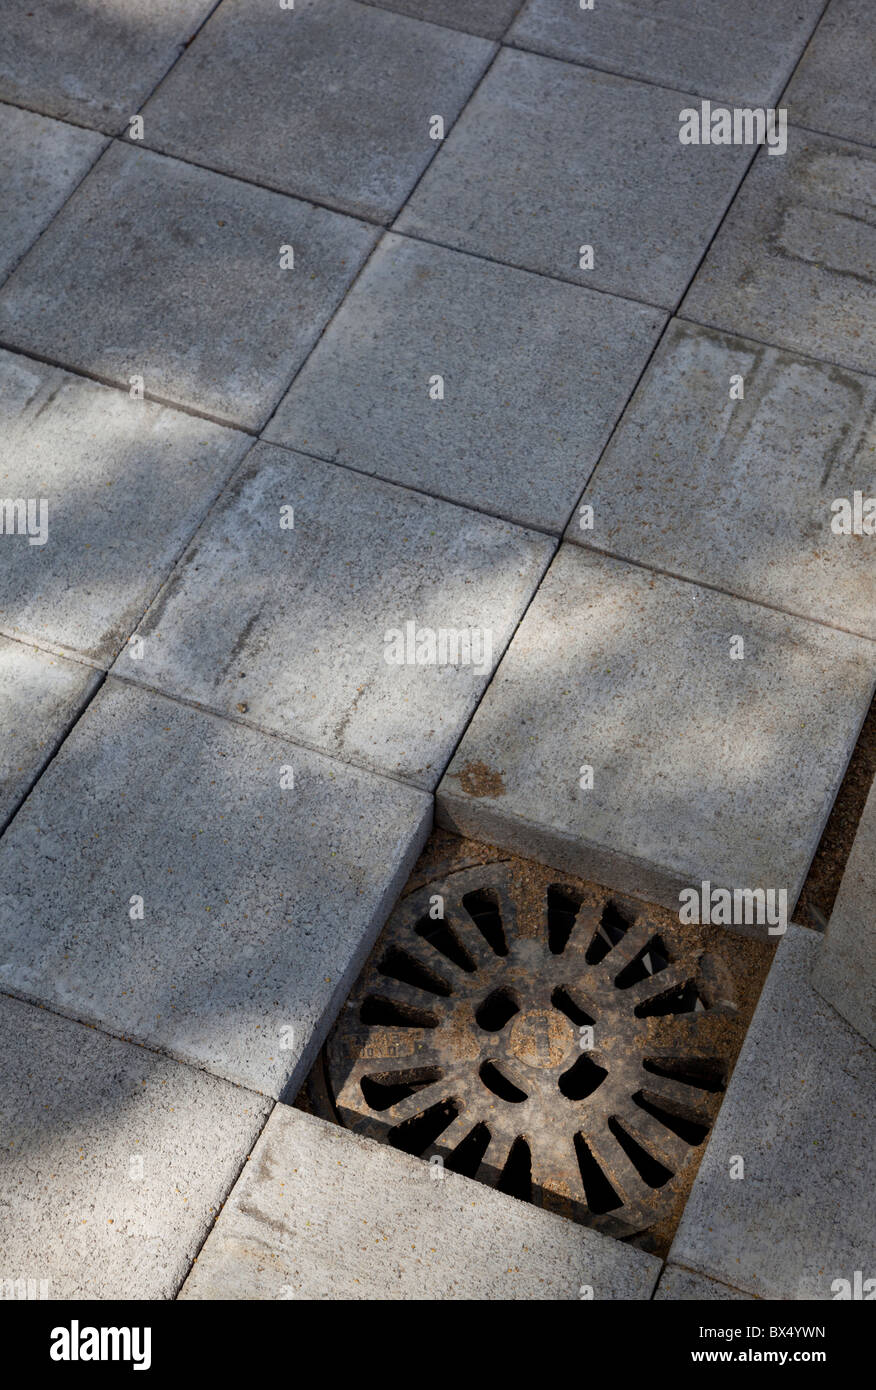 Rainwater drain hole on concrete tile floor stock photo 33301121 rainwater drain hole on concrete tile floor dailygadgetfo Gallery